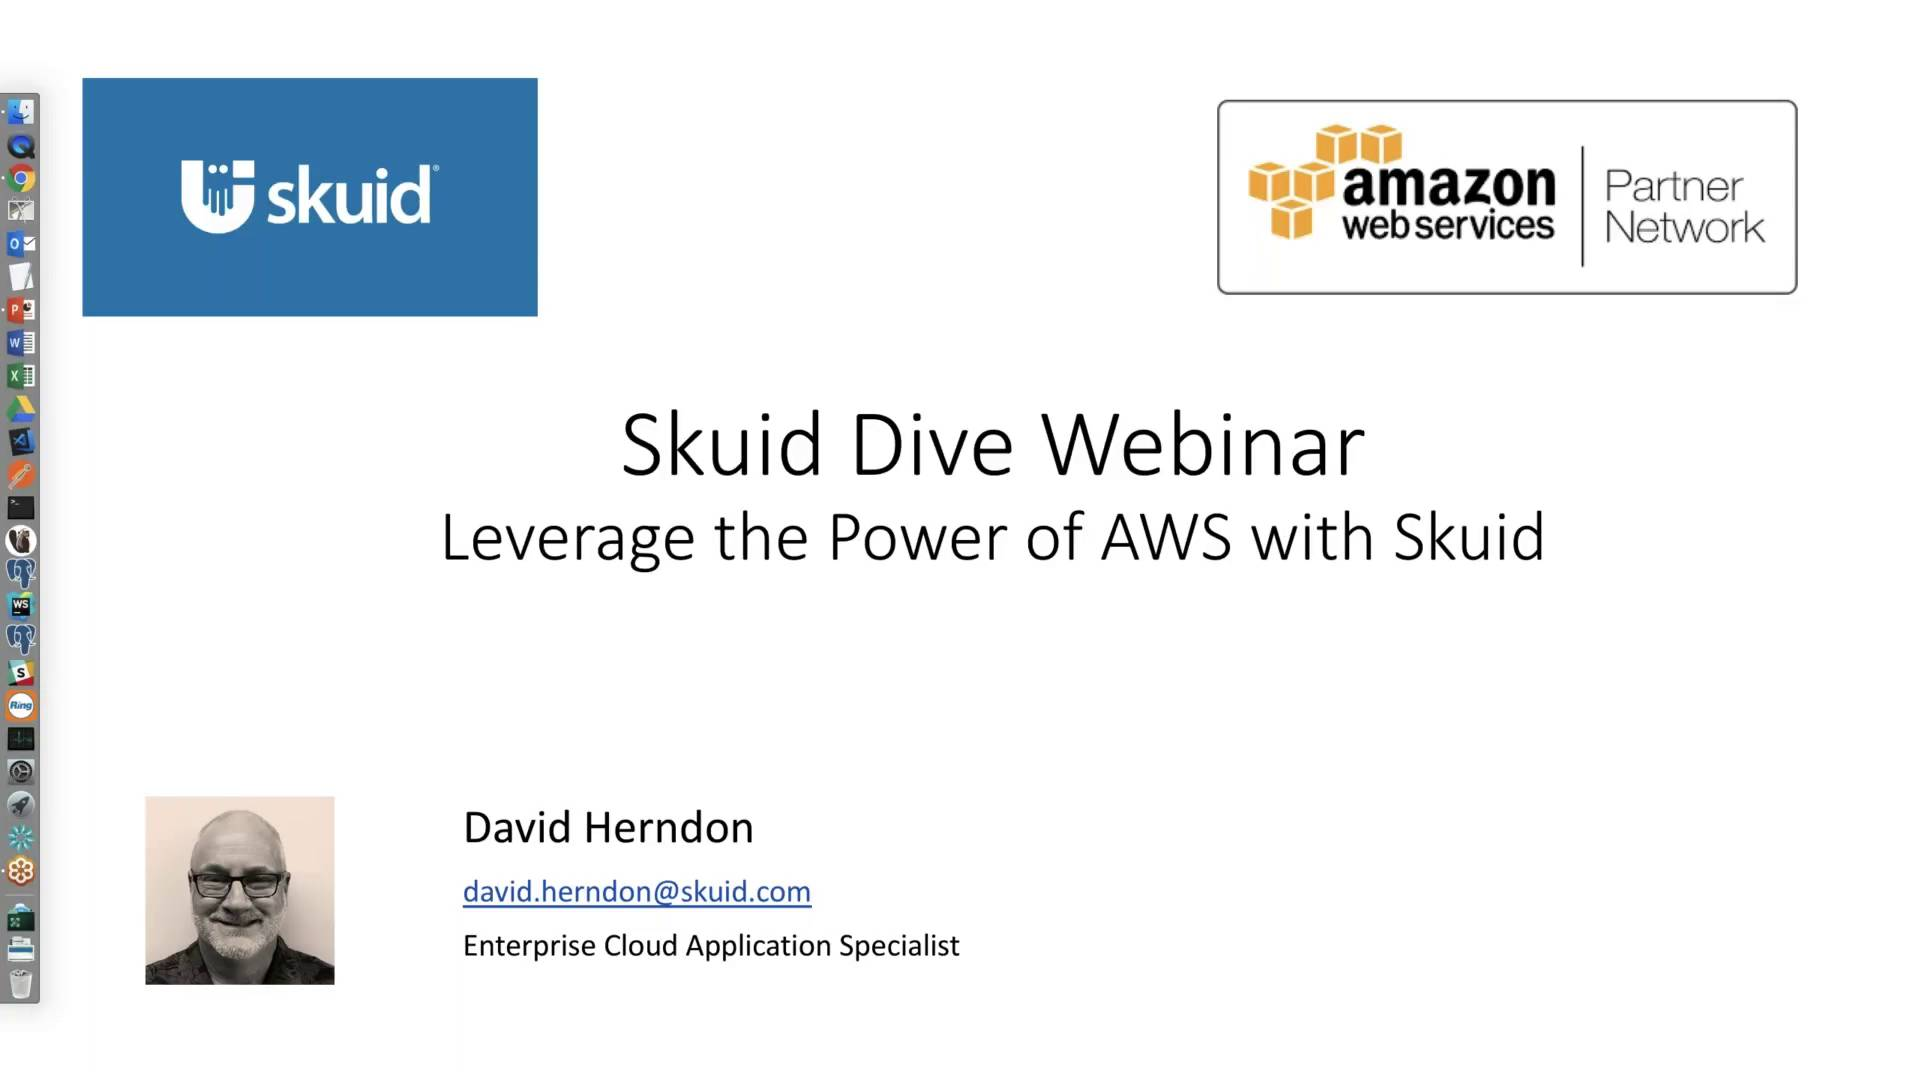 Leverage the power of AWS with Skuid